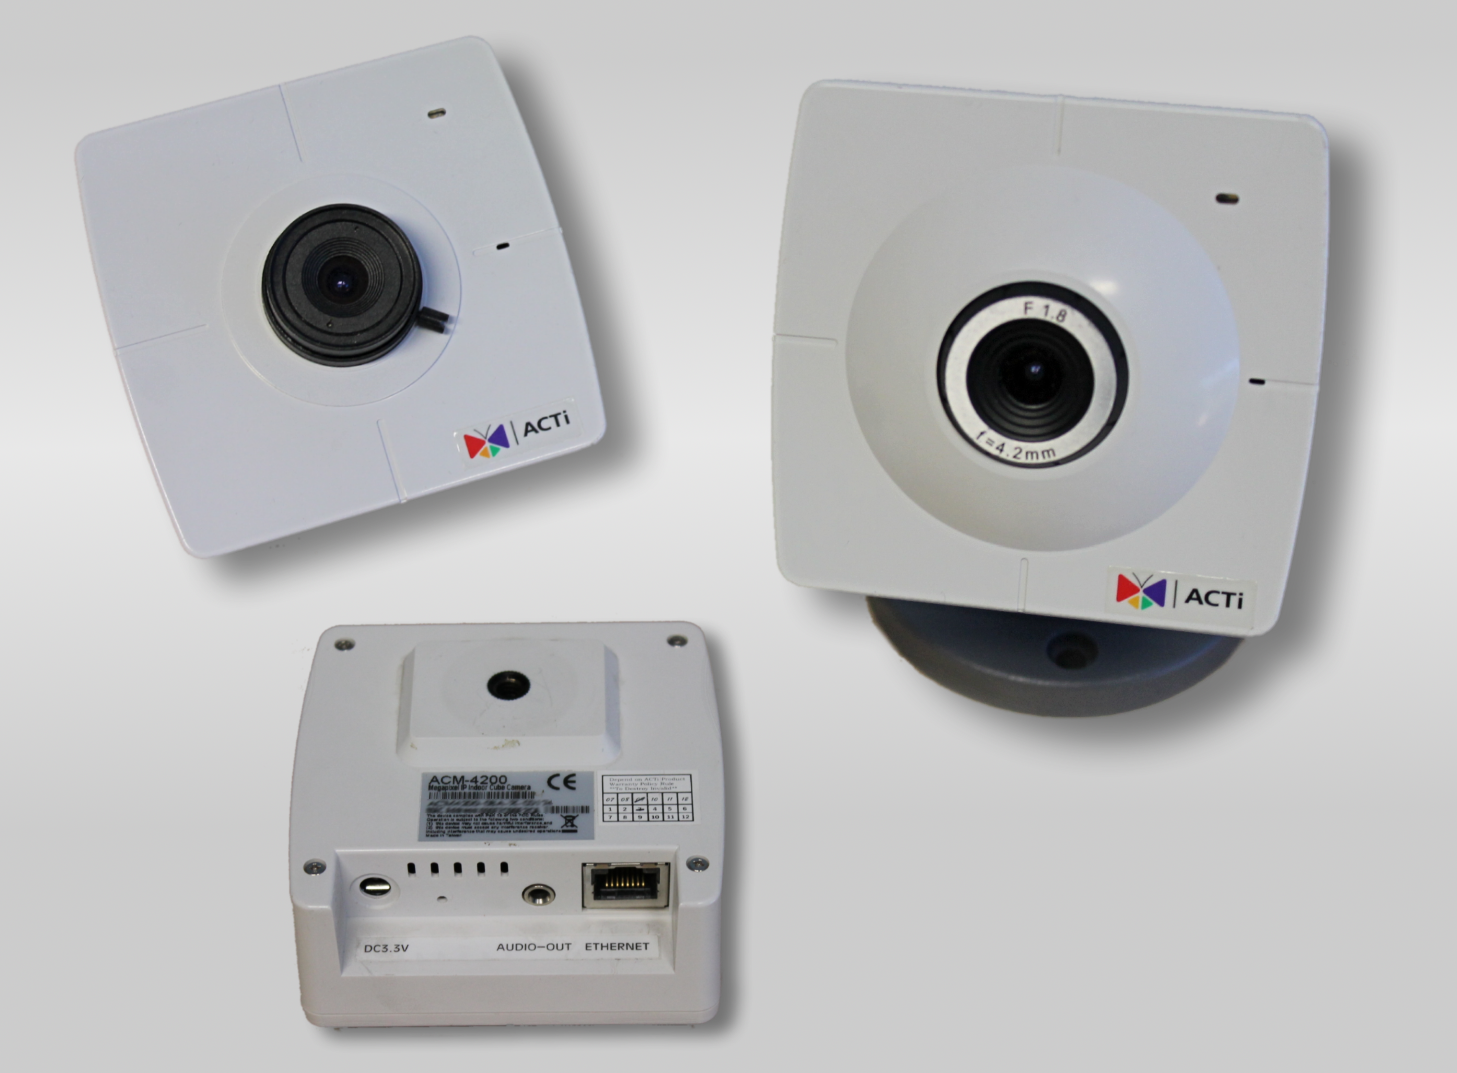 File:Acti ip cameras png - Wikimedia Commons